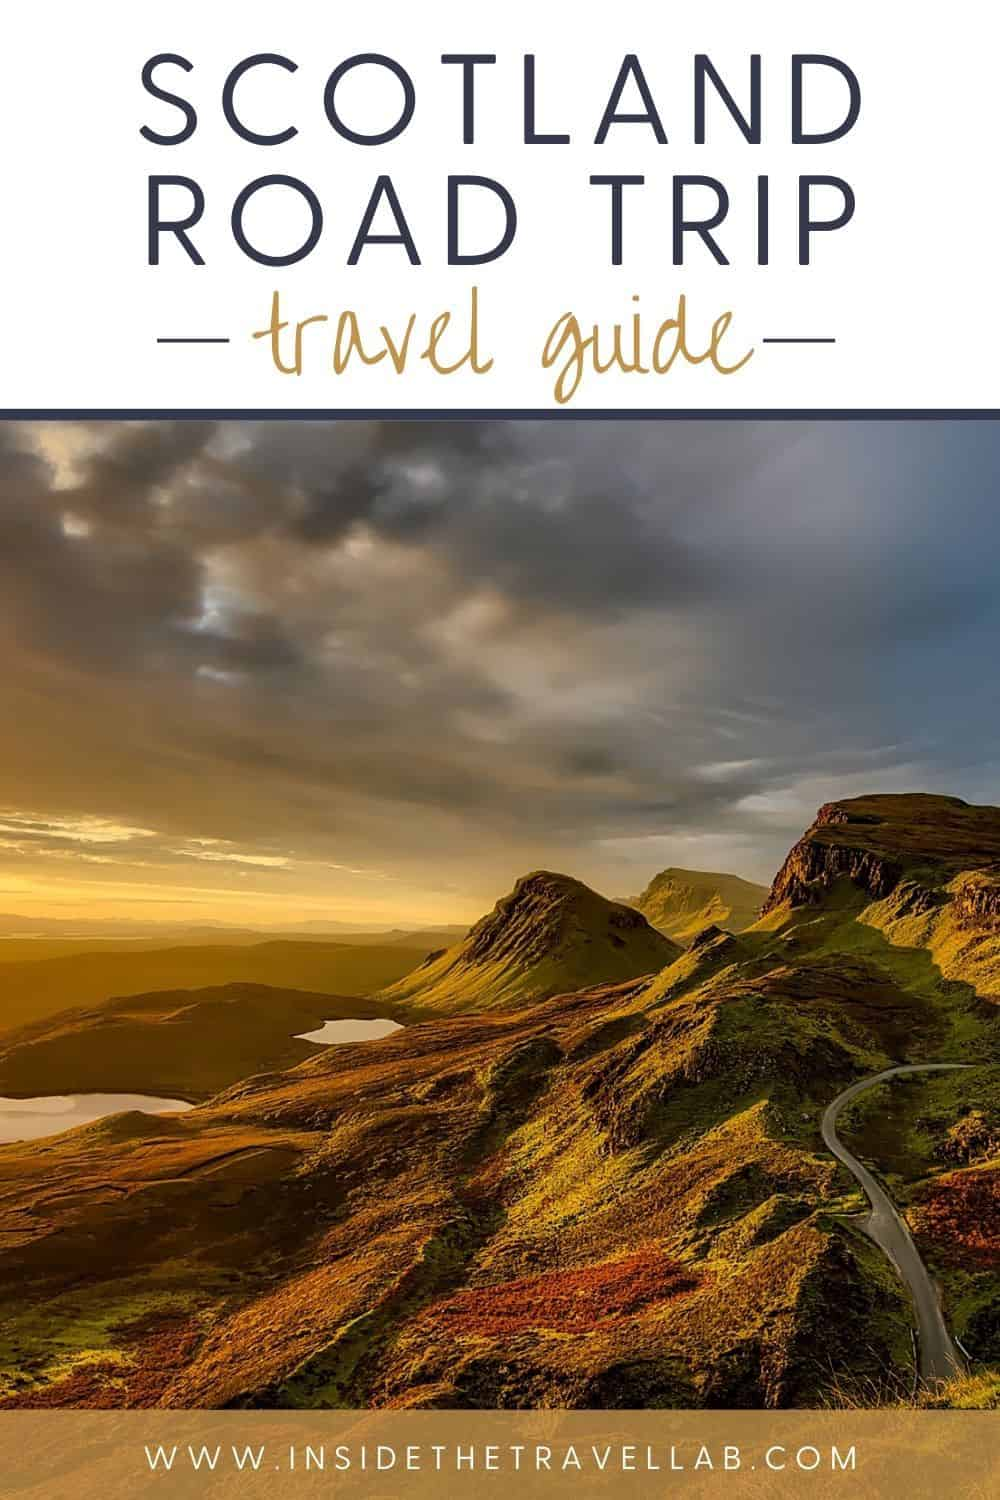 Scotland Travel Guide - Scotland road trip itineraries - wild landscapes